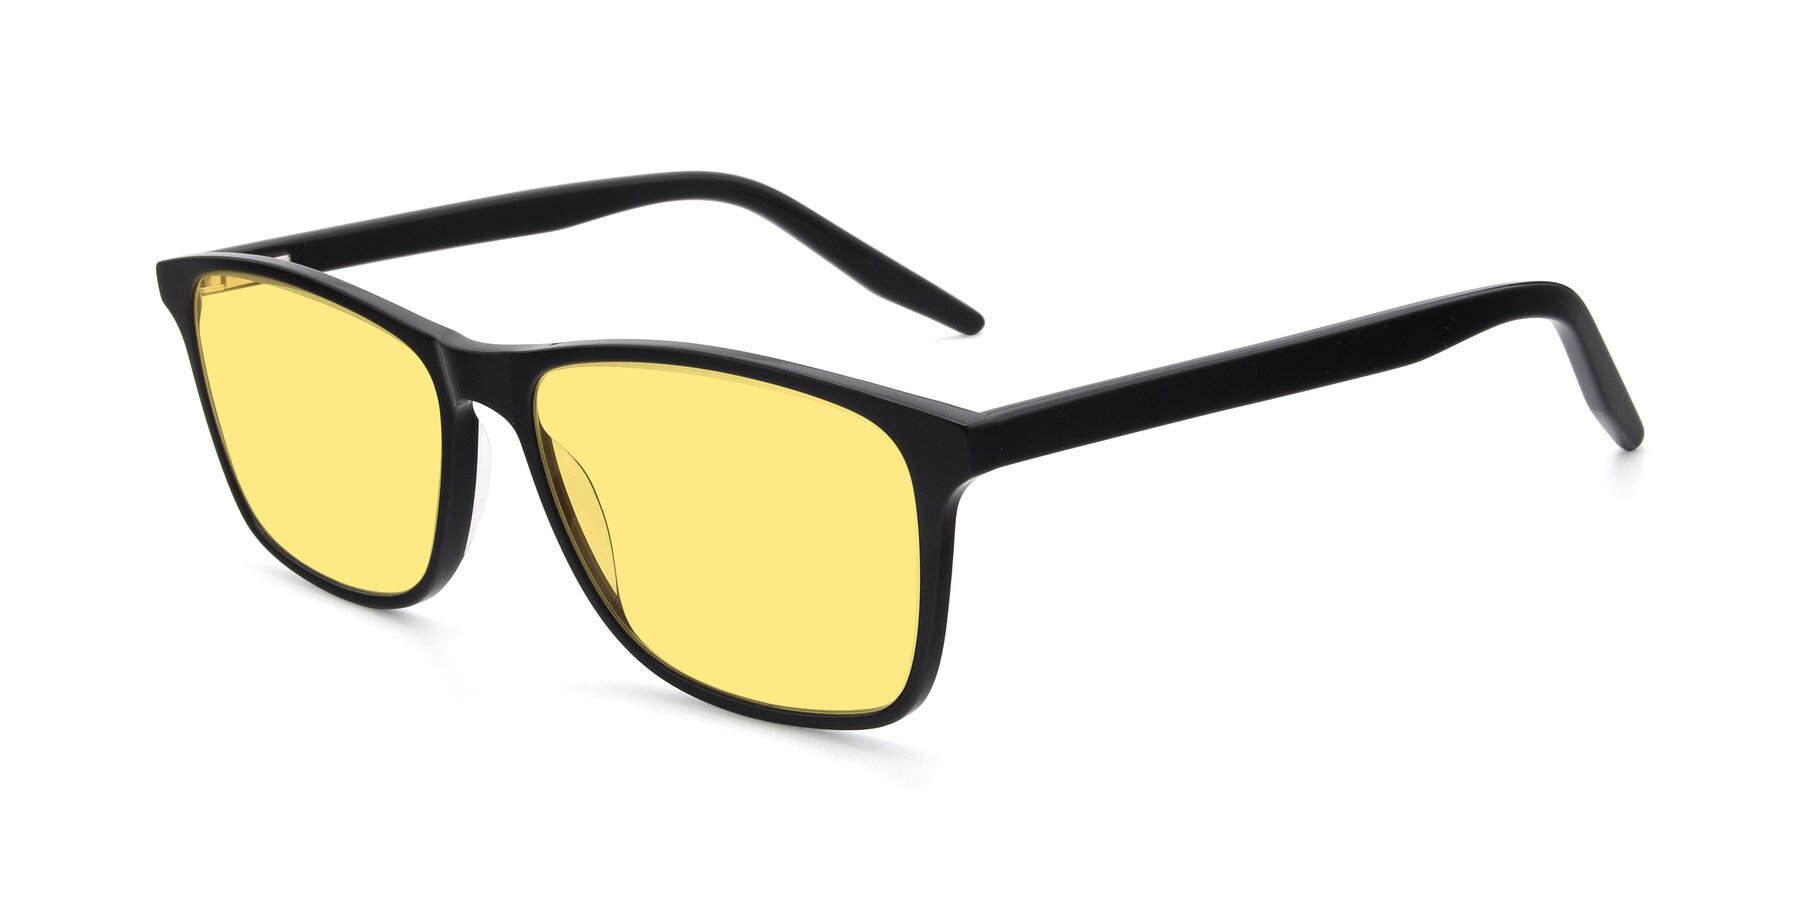 Angle of 17500 in Black with Medium Yellow Tinted Lenses